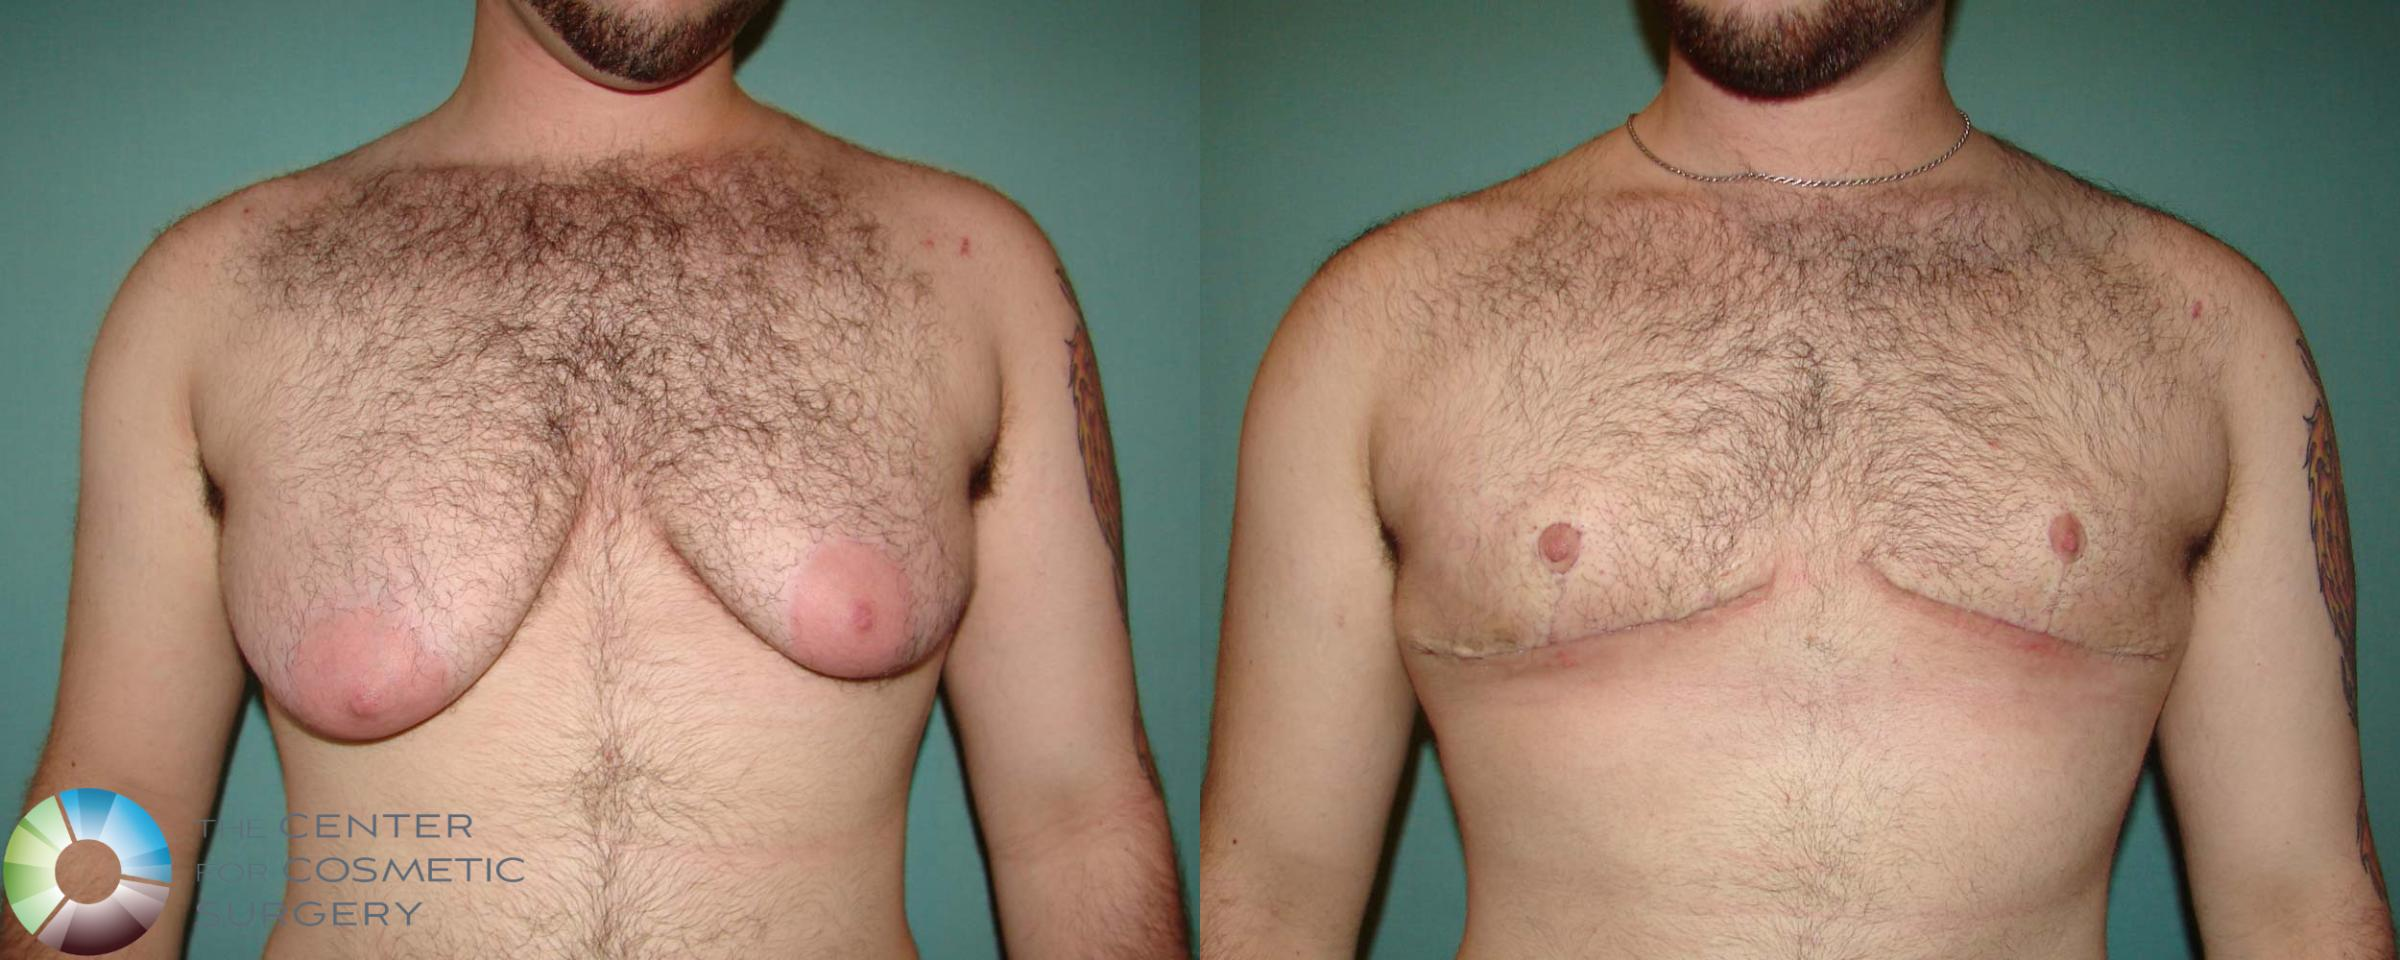 FTM Top Surgery/Chest Masculinization Case 674 Before & After View #1 | Golden, CO | The Center for Cosmetic Surgery